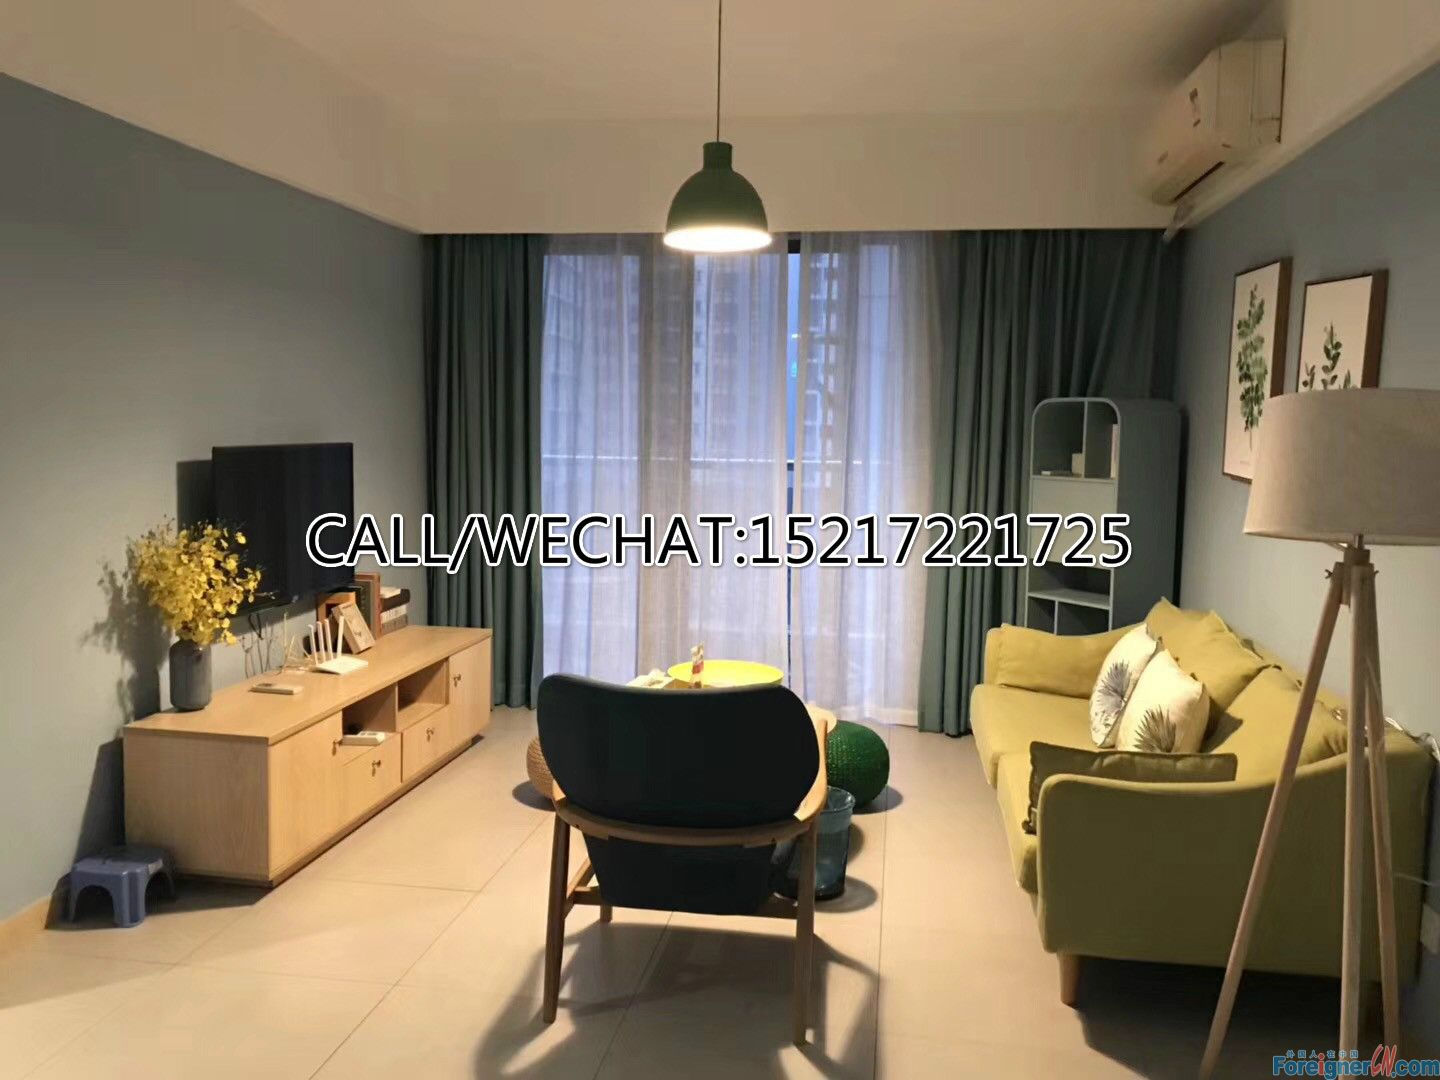 Brand new 2bedrooms for rent in Tancun (ZhuJiang New Town)new modern ,new Ikea furniture